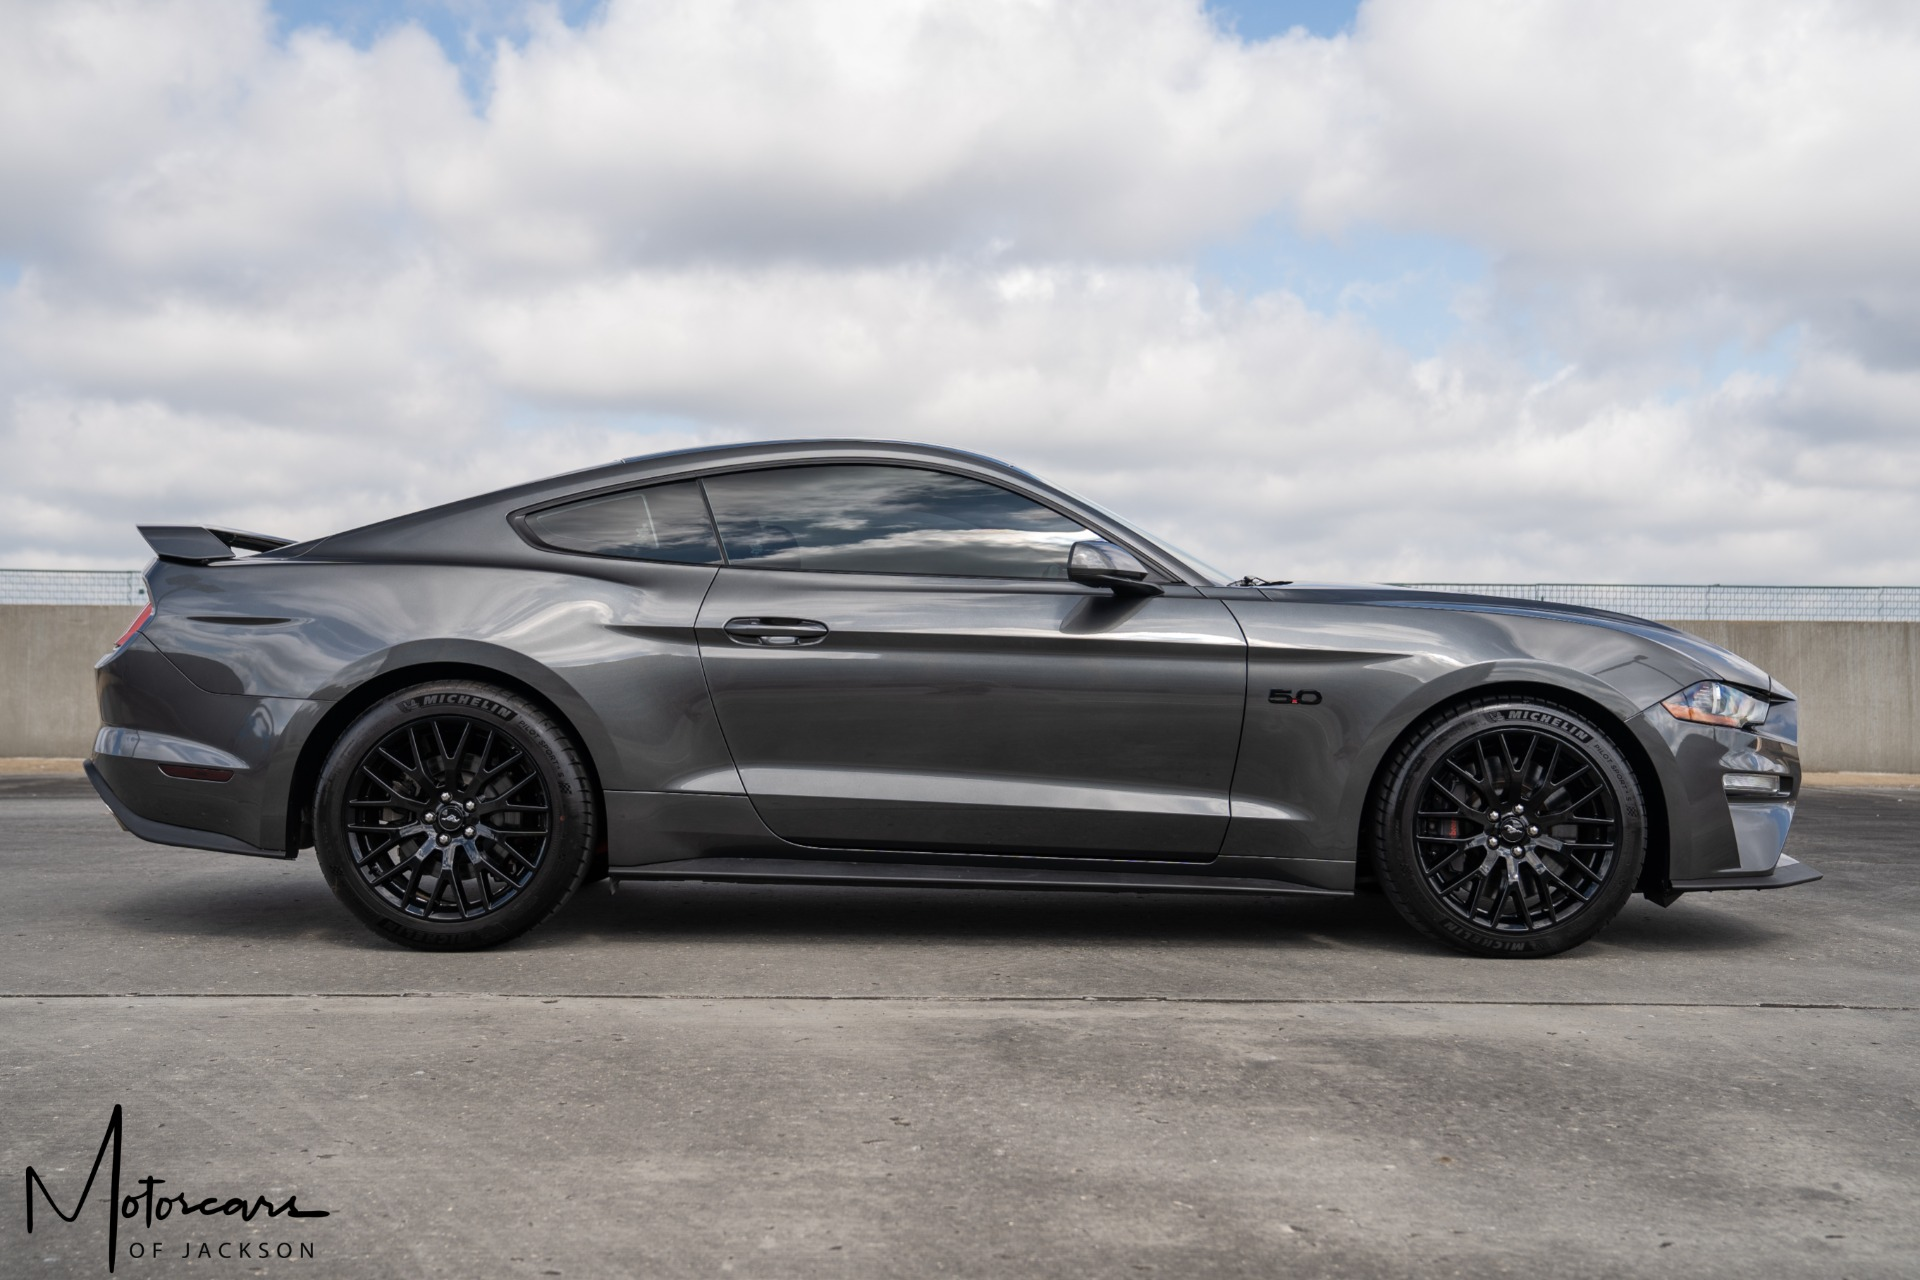 Used-2018-Ford-Mustang-GT-Jackson-MS